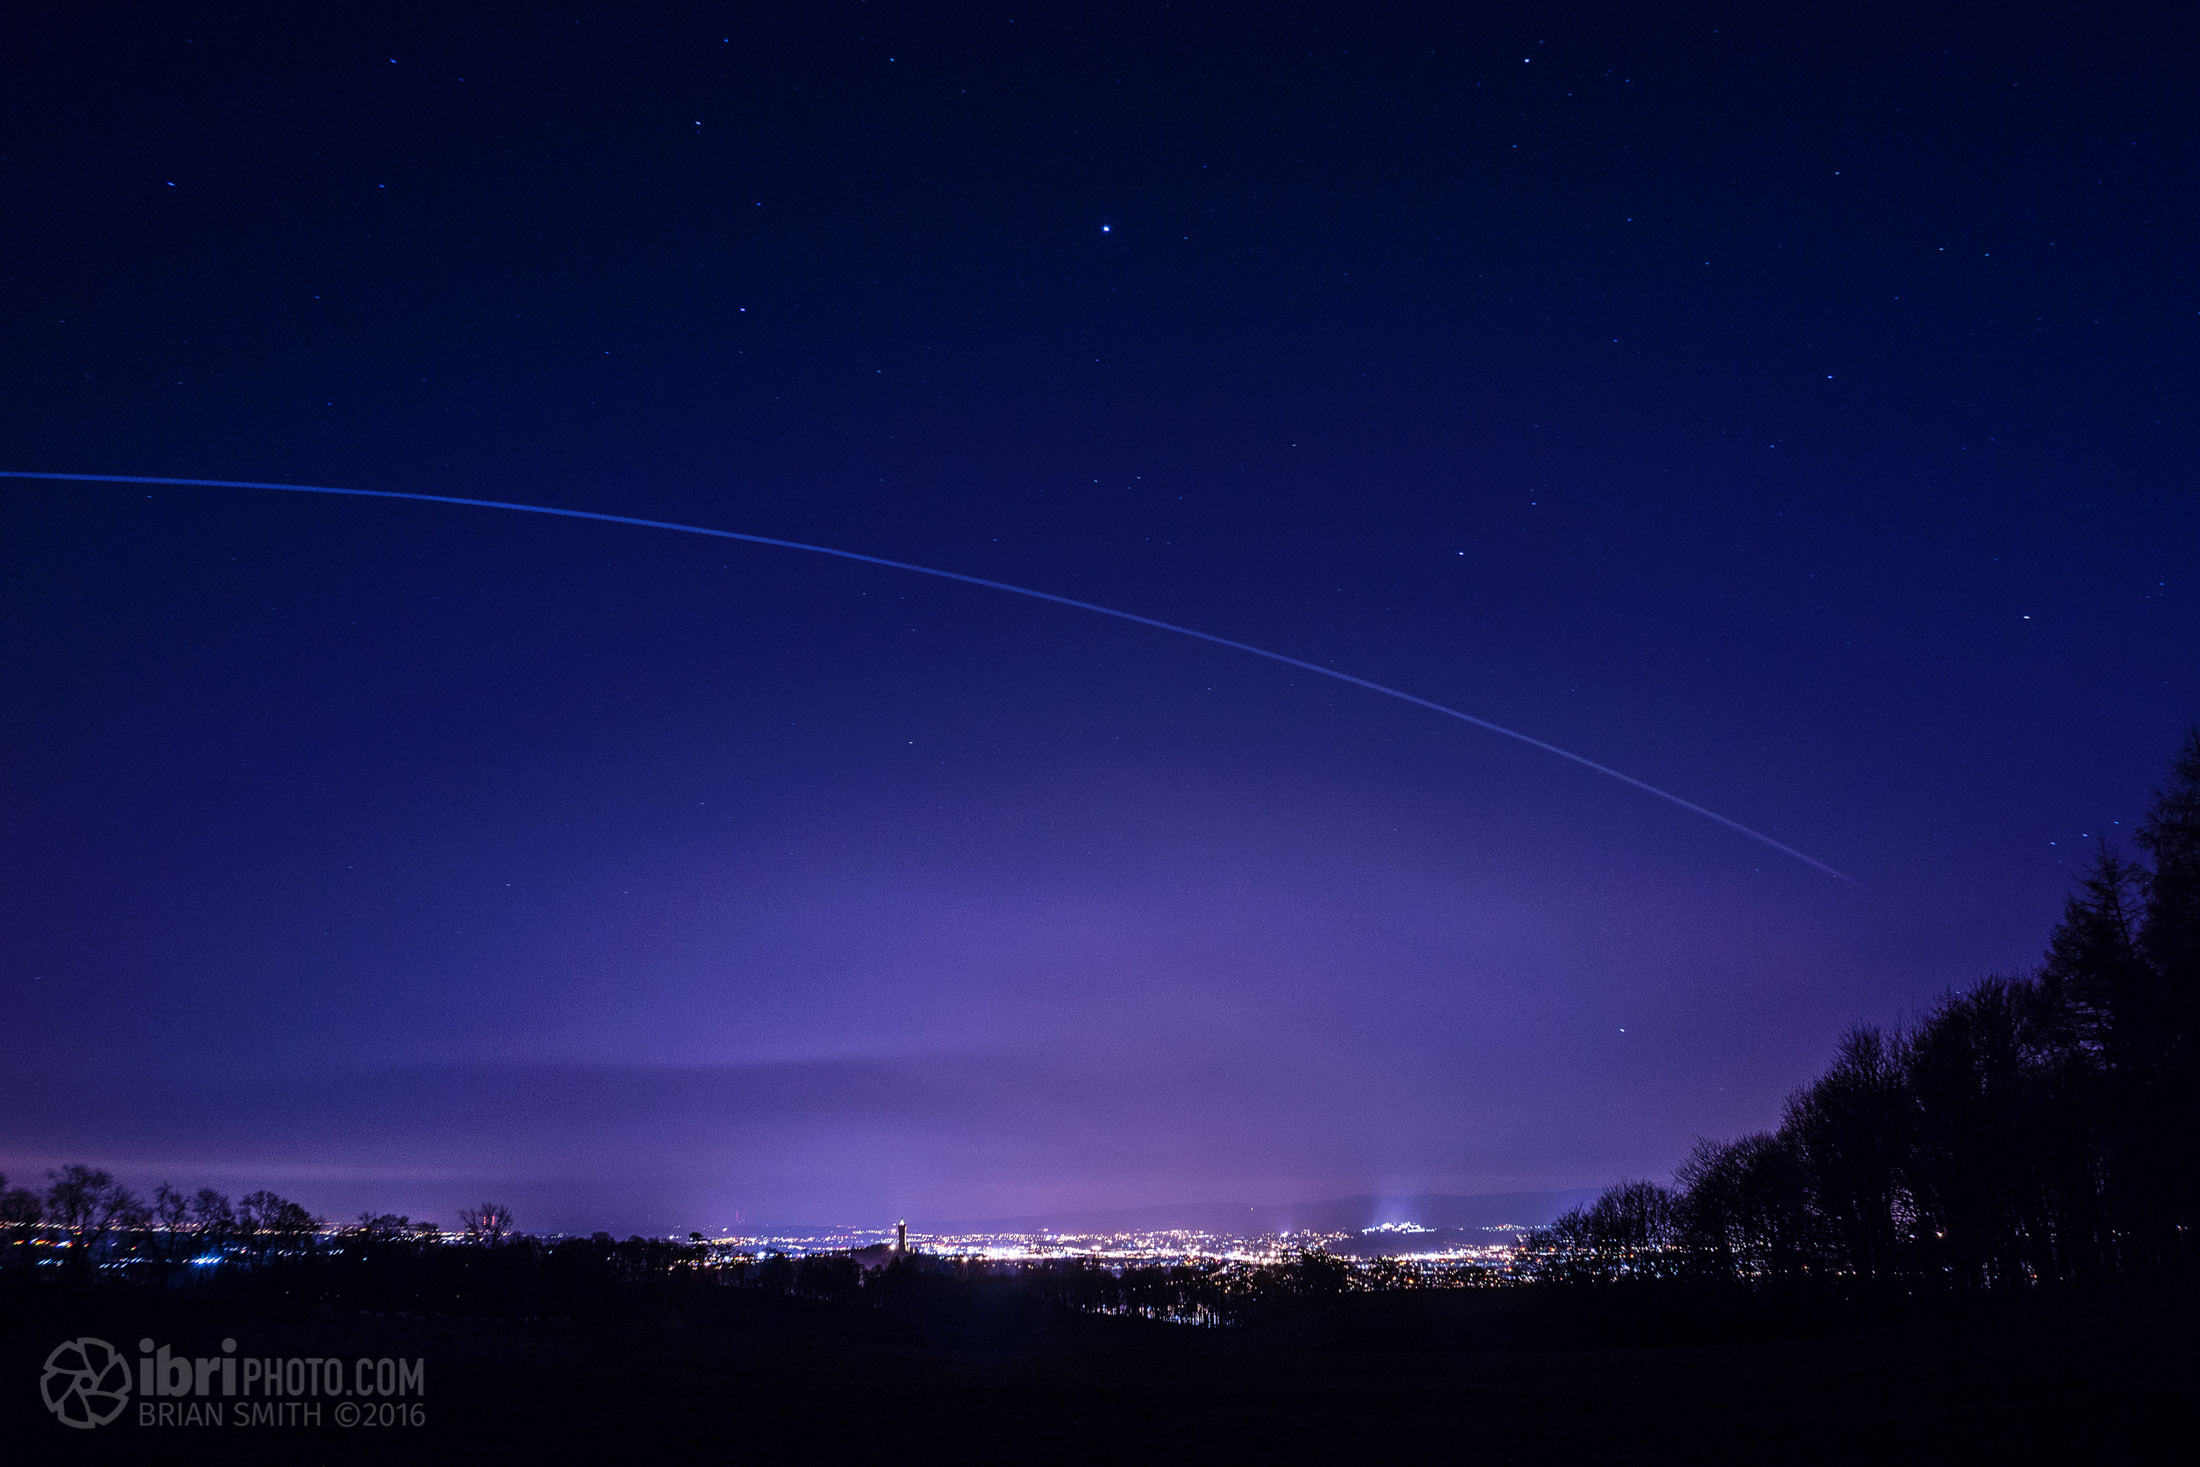 Capturing the International Space Station over Stirling.